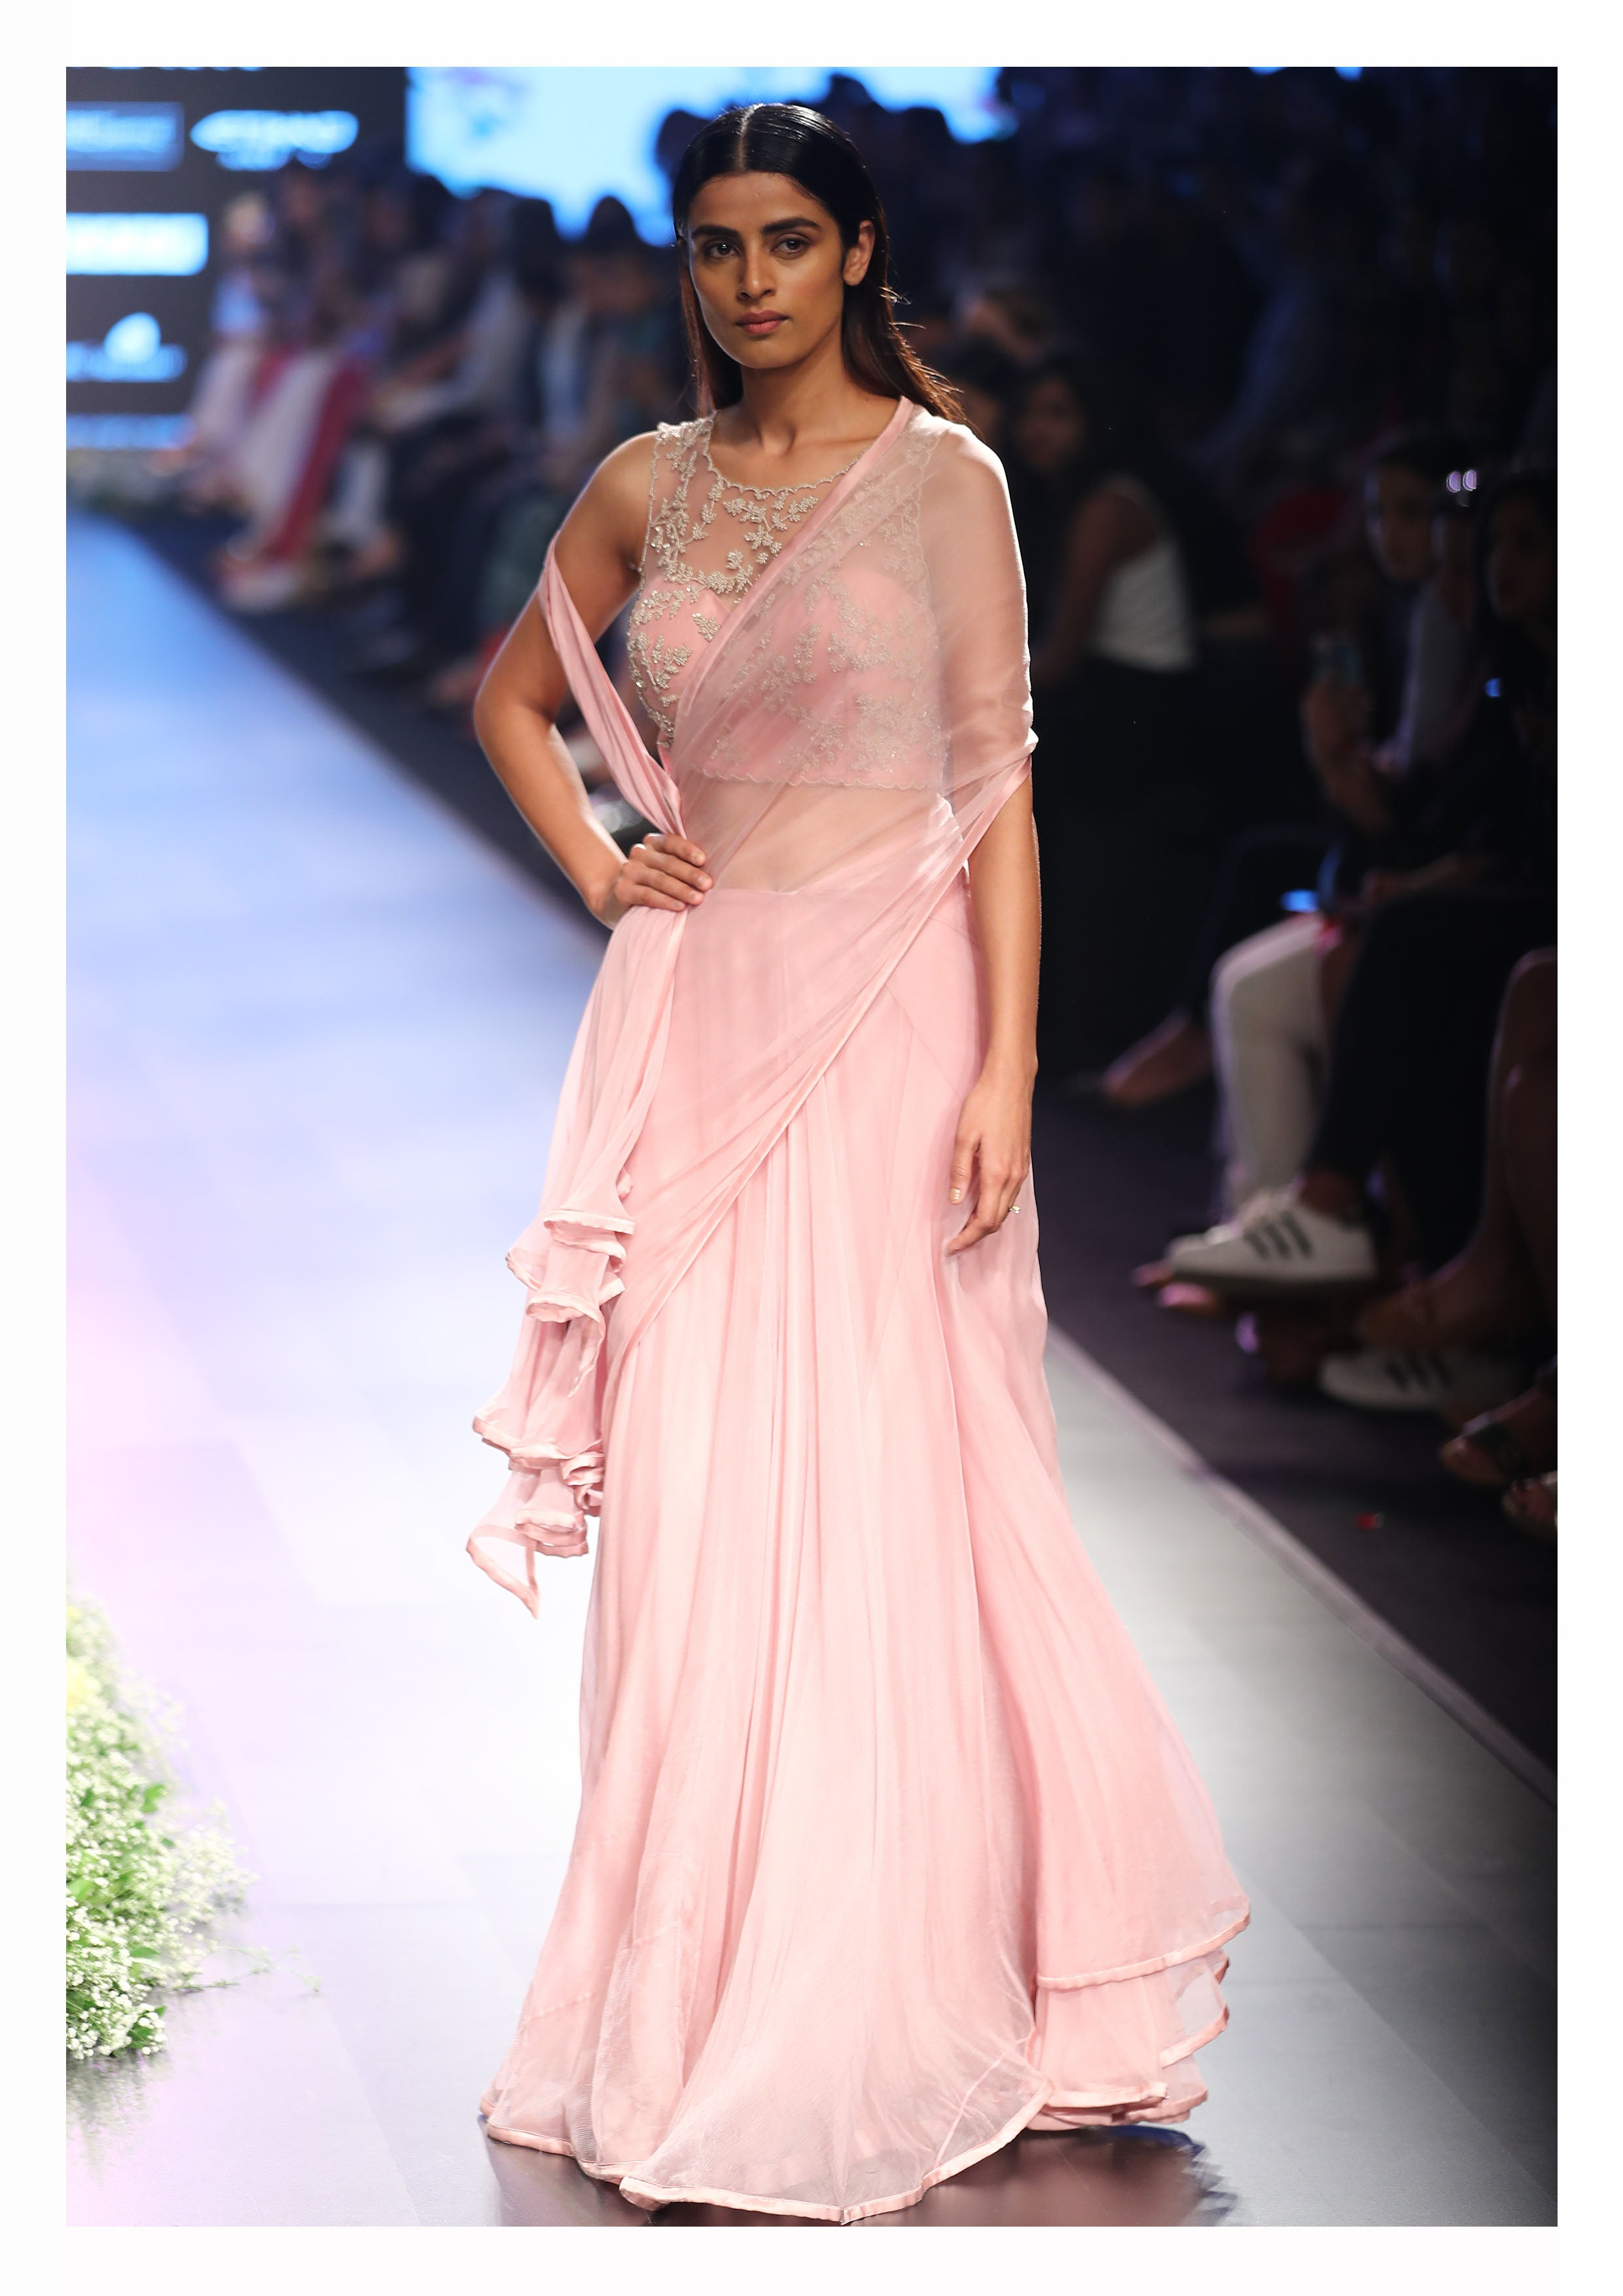 Powder Pink Pre-Draped Chiffon Sari with a Corset Blouse - The Grand Trunk